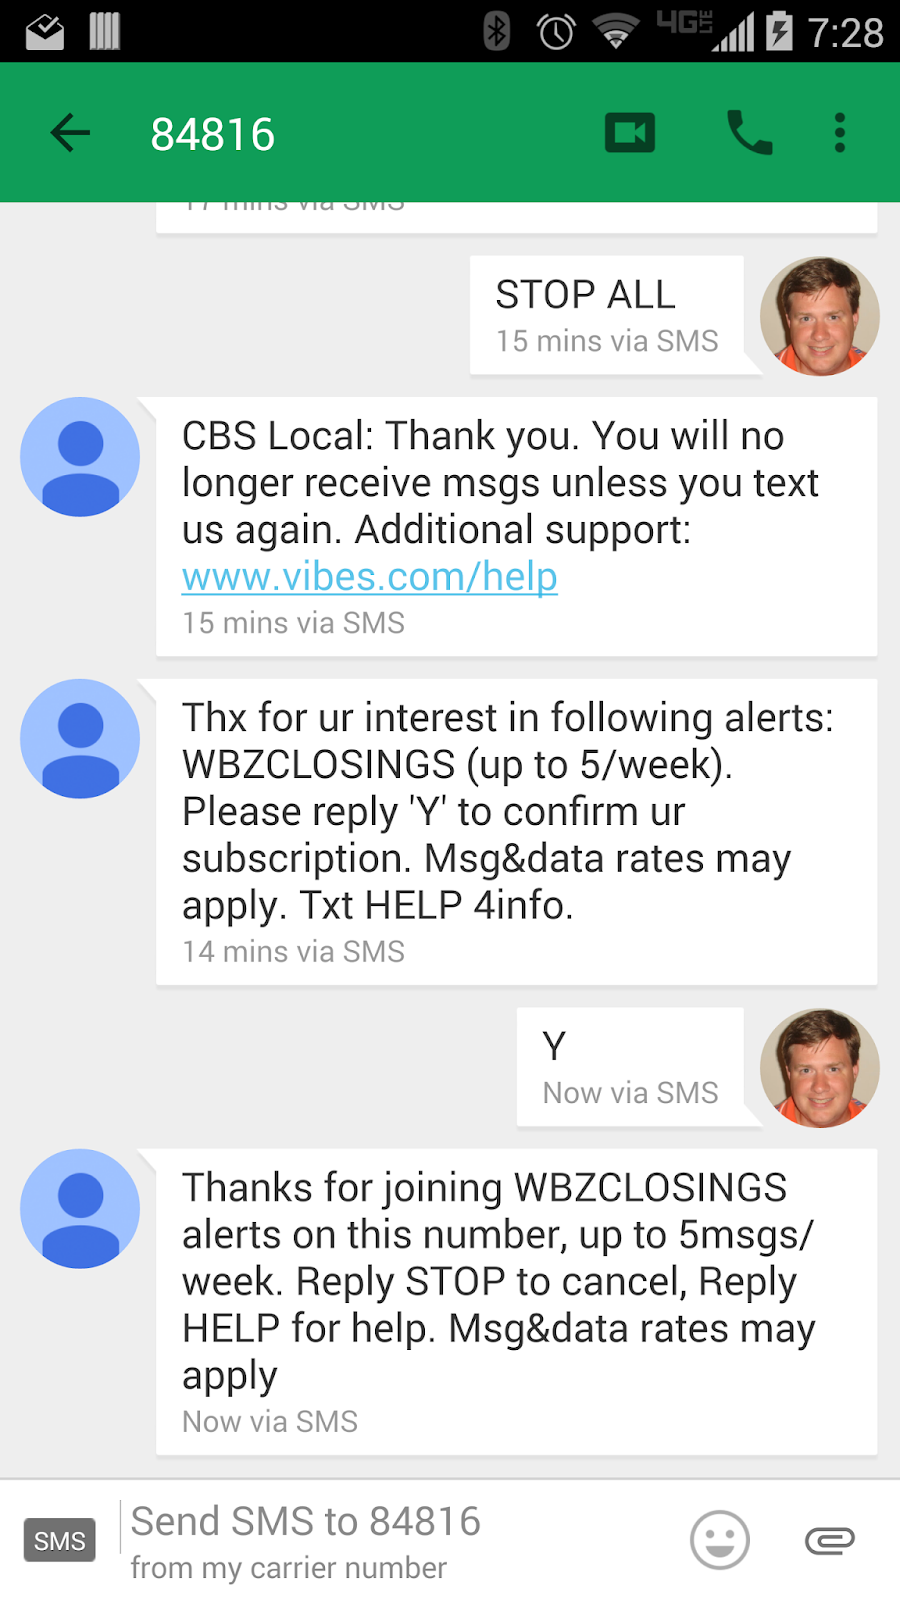 Text Alerts For School Closings Delays Holliston High Have A Model Habcf024sd After Power Outage Last Night The Check Your Mobile Phone Message From System You Will Need To Reply Y Complete Subscription